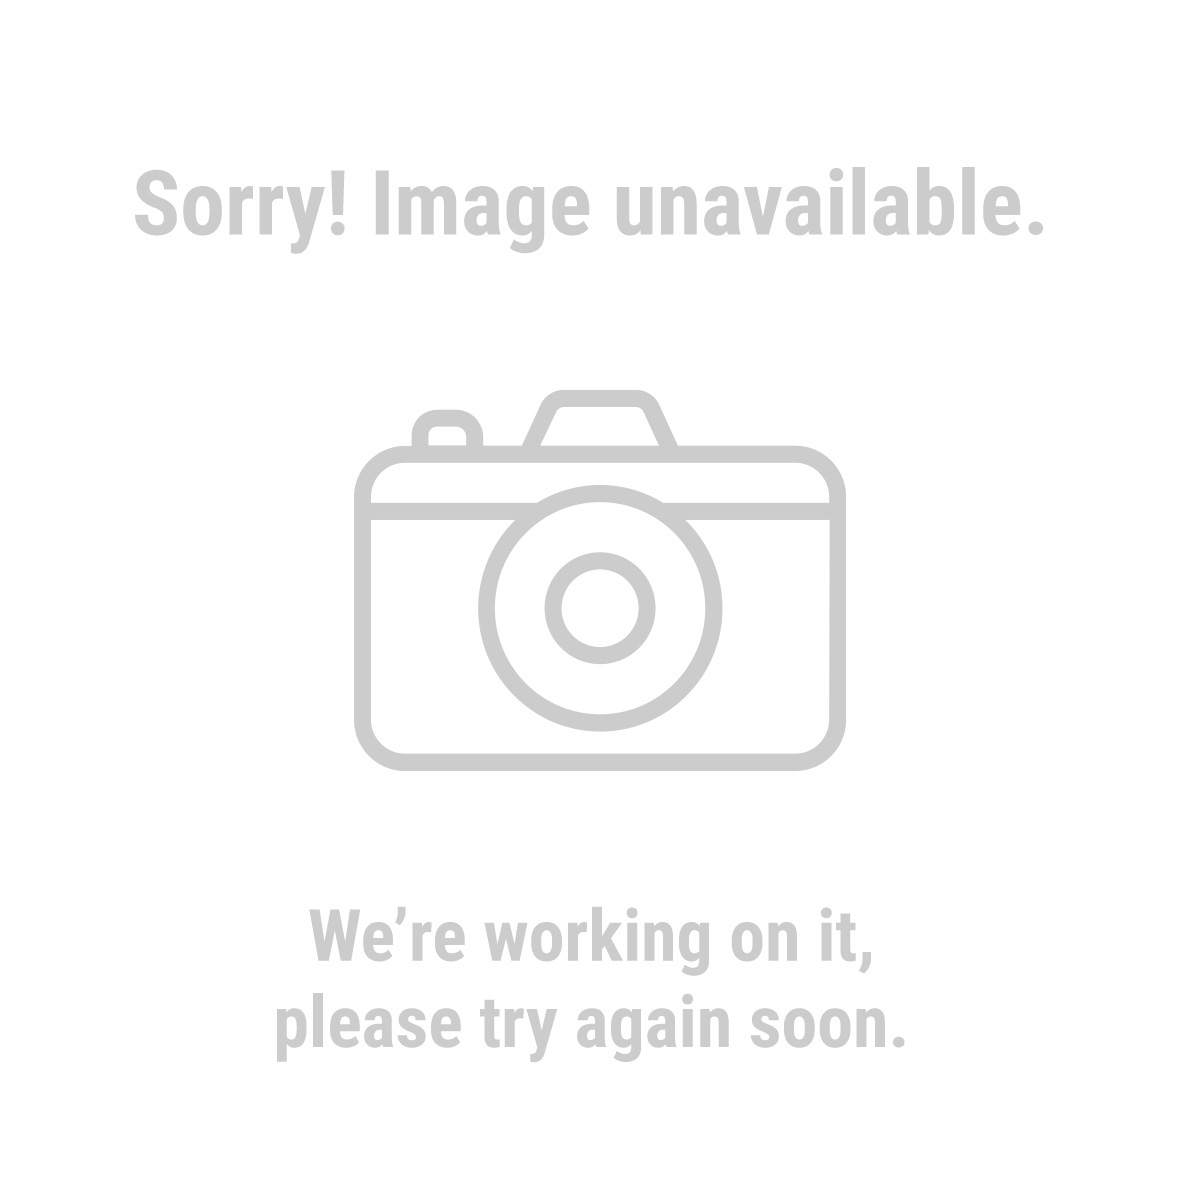 HFT® 69136 5 ft. 6 in. x 7 ft. 6 in. Blue All Purpose/Weather Resistant Tarp